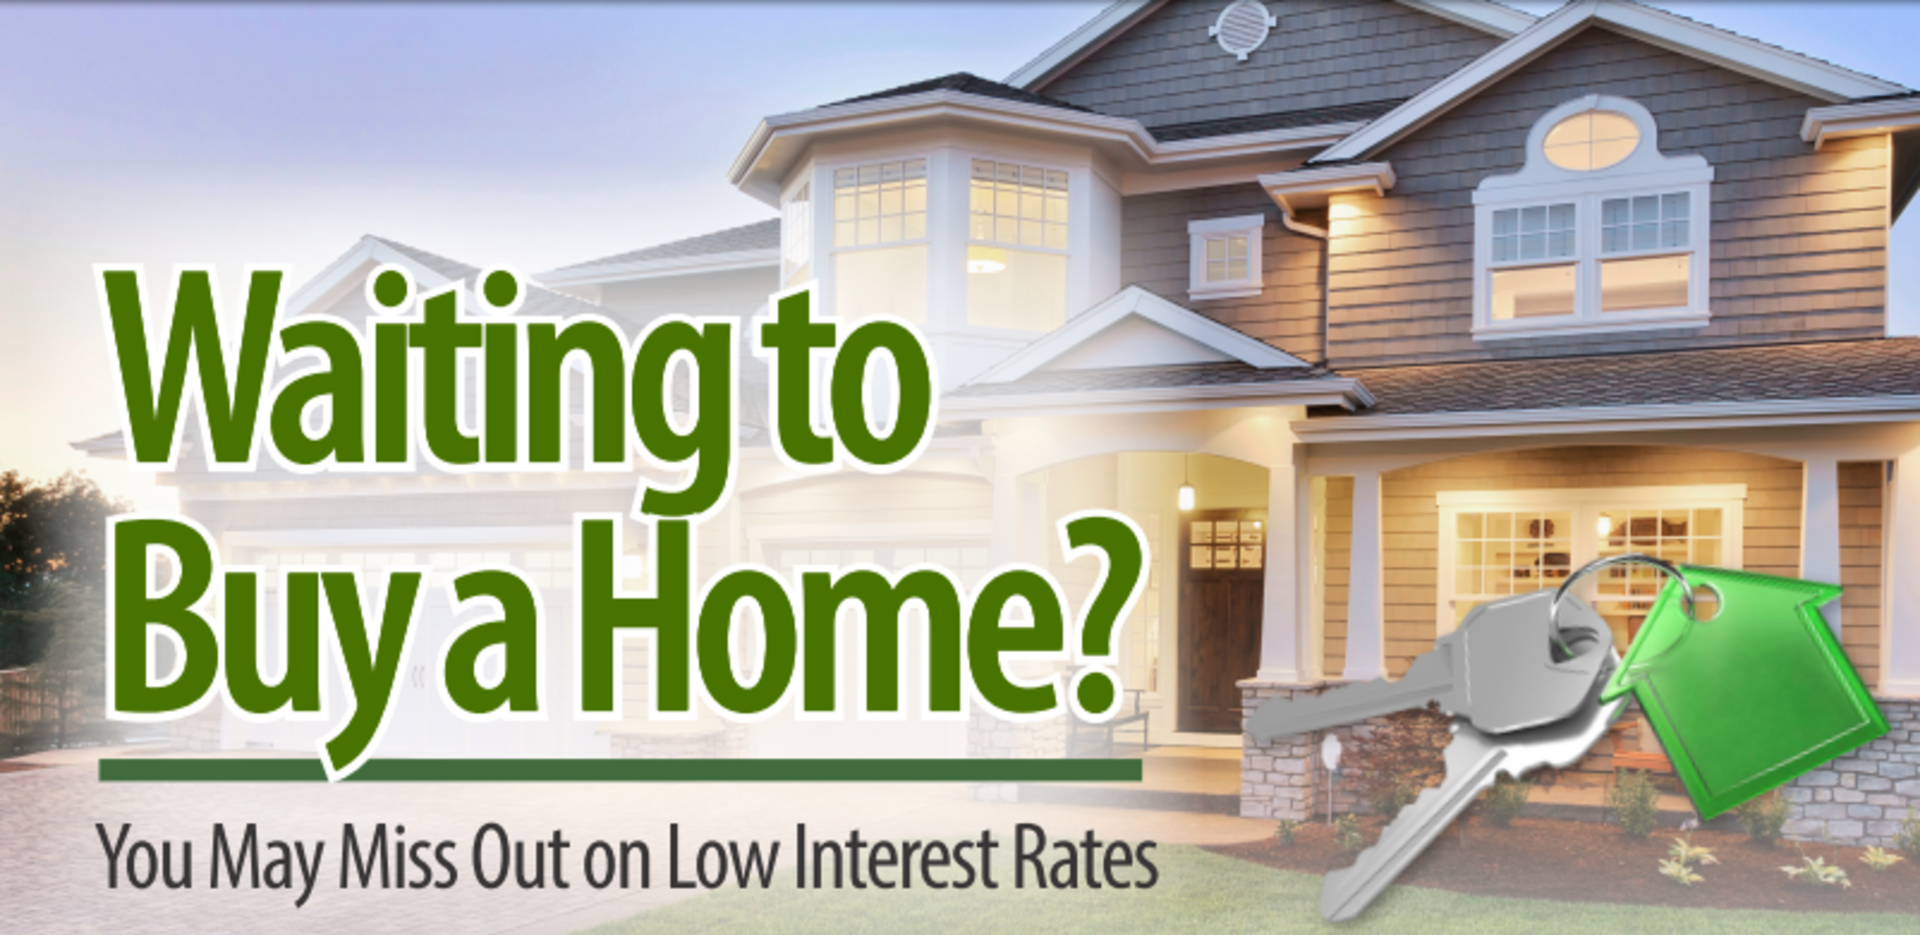 Are you thinking about buying a house this year?